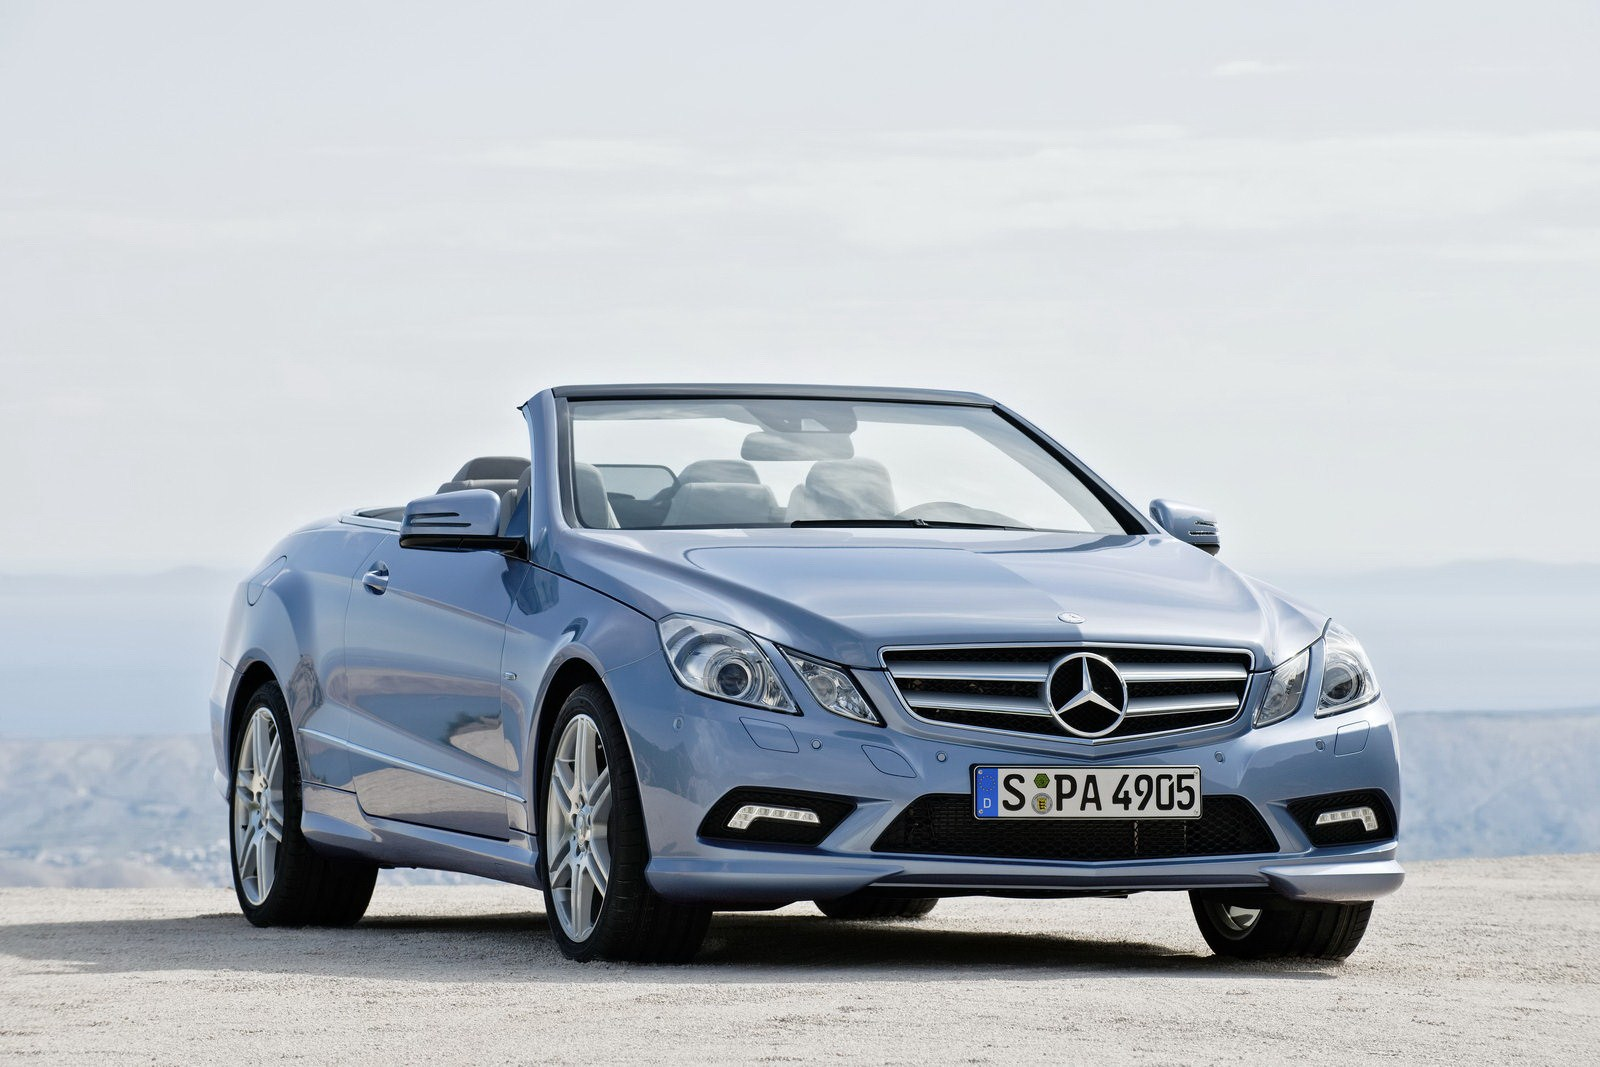 2016 Mercedes Benz S Class Convertible Spy Pictures Auto Emb